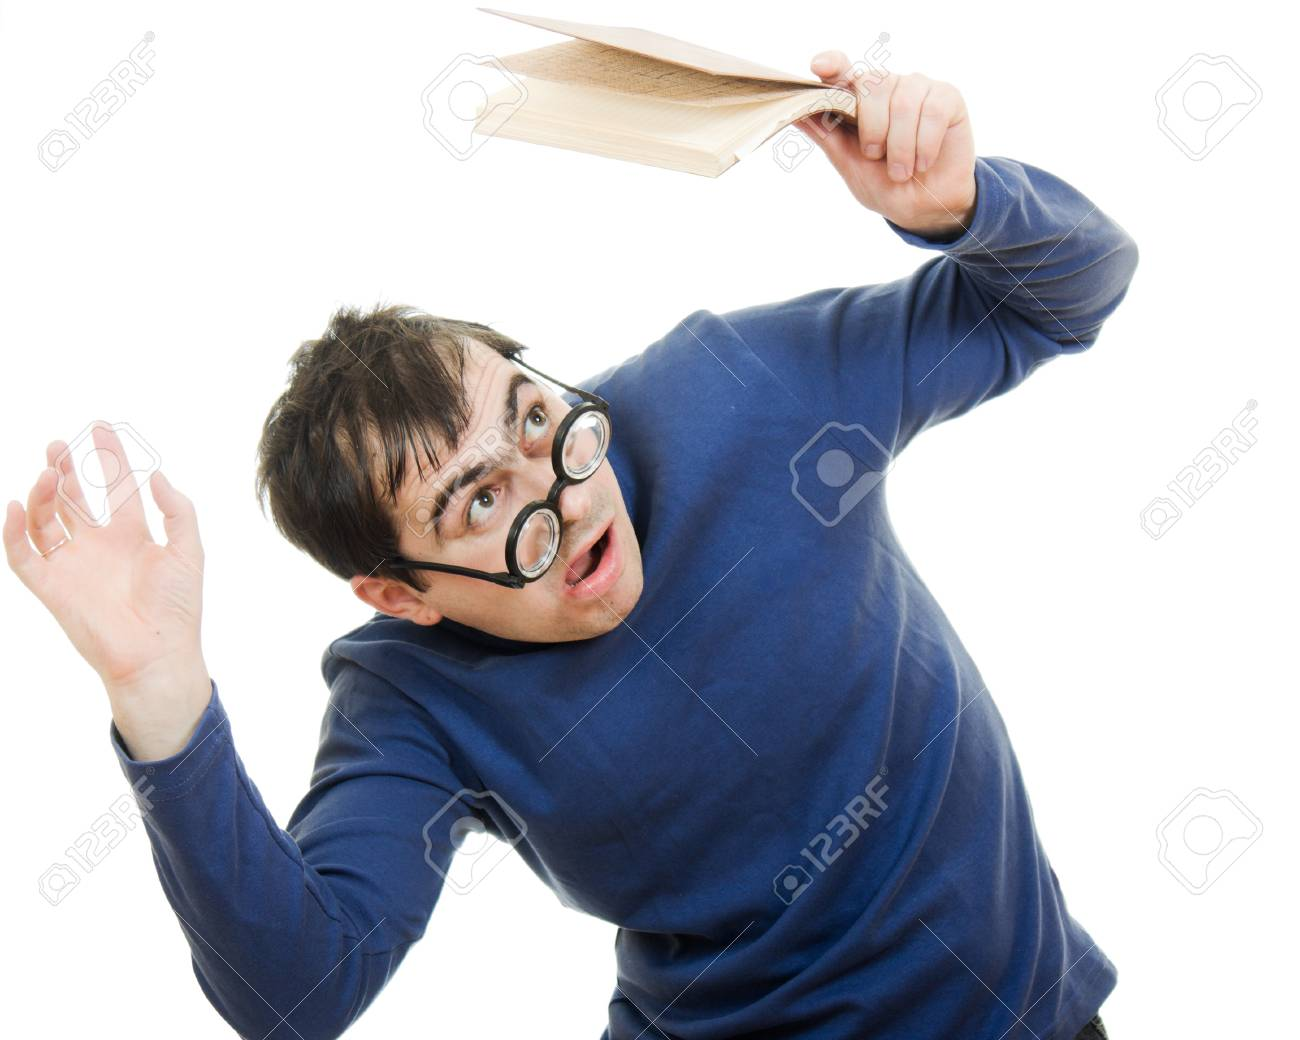 Student in glasses with a book over his head on white background Stock Photo - 12388094